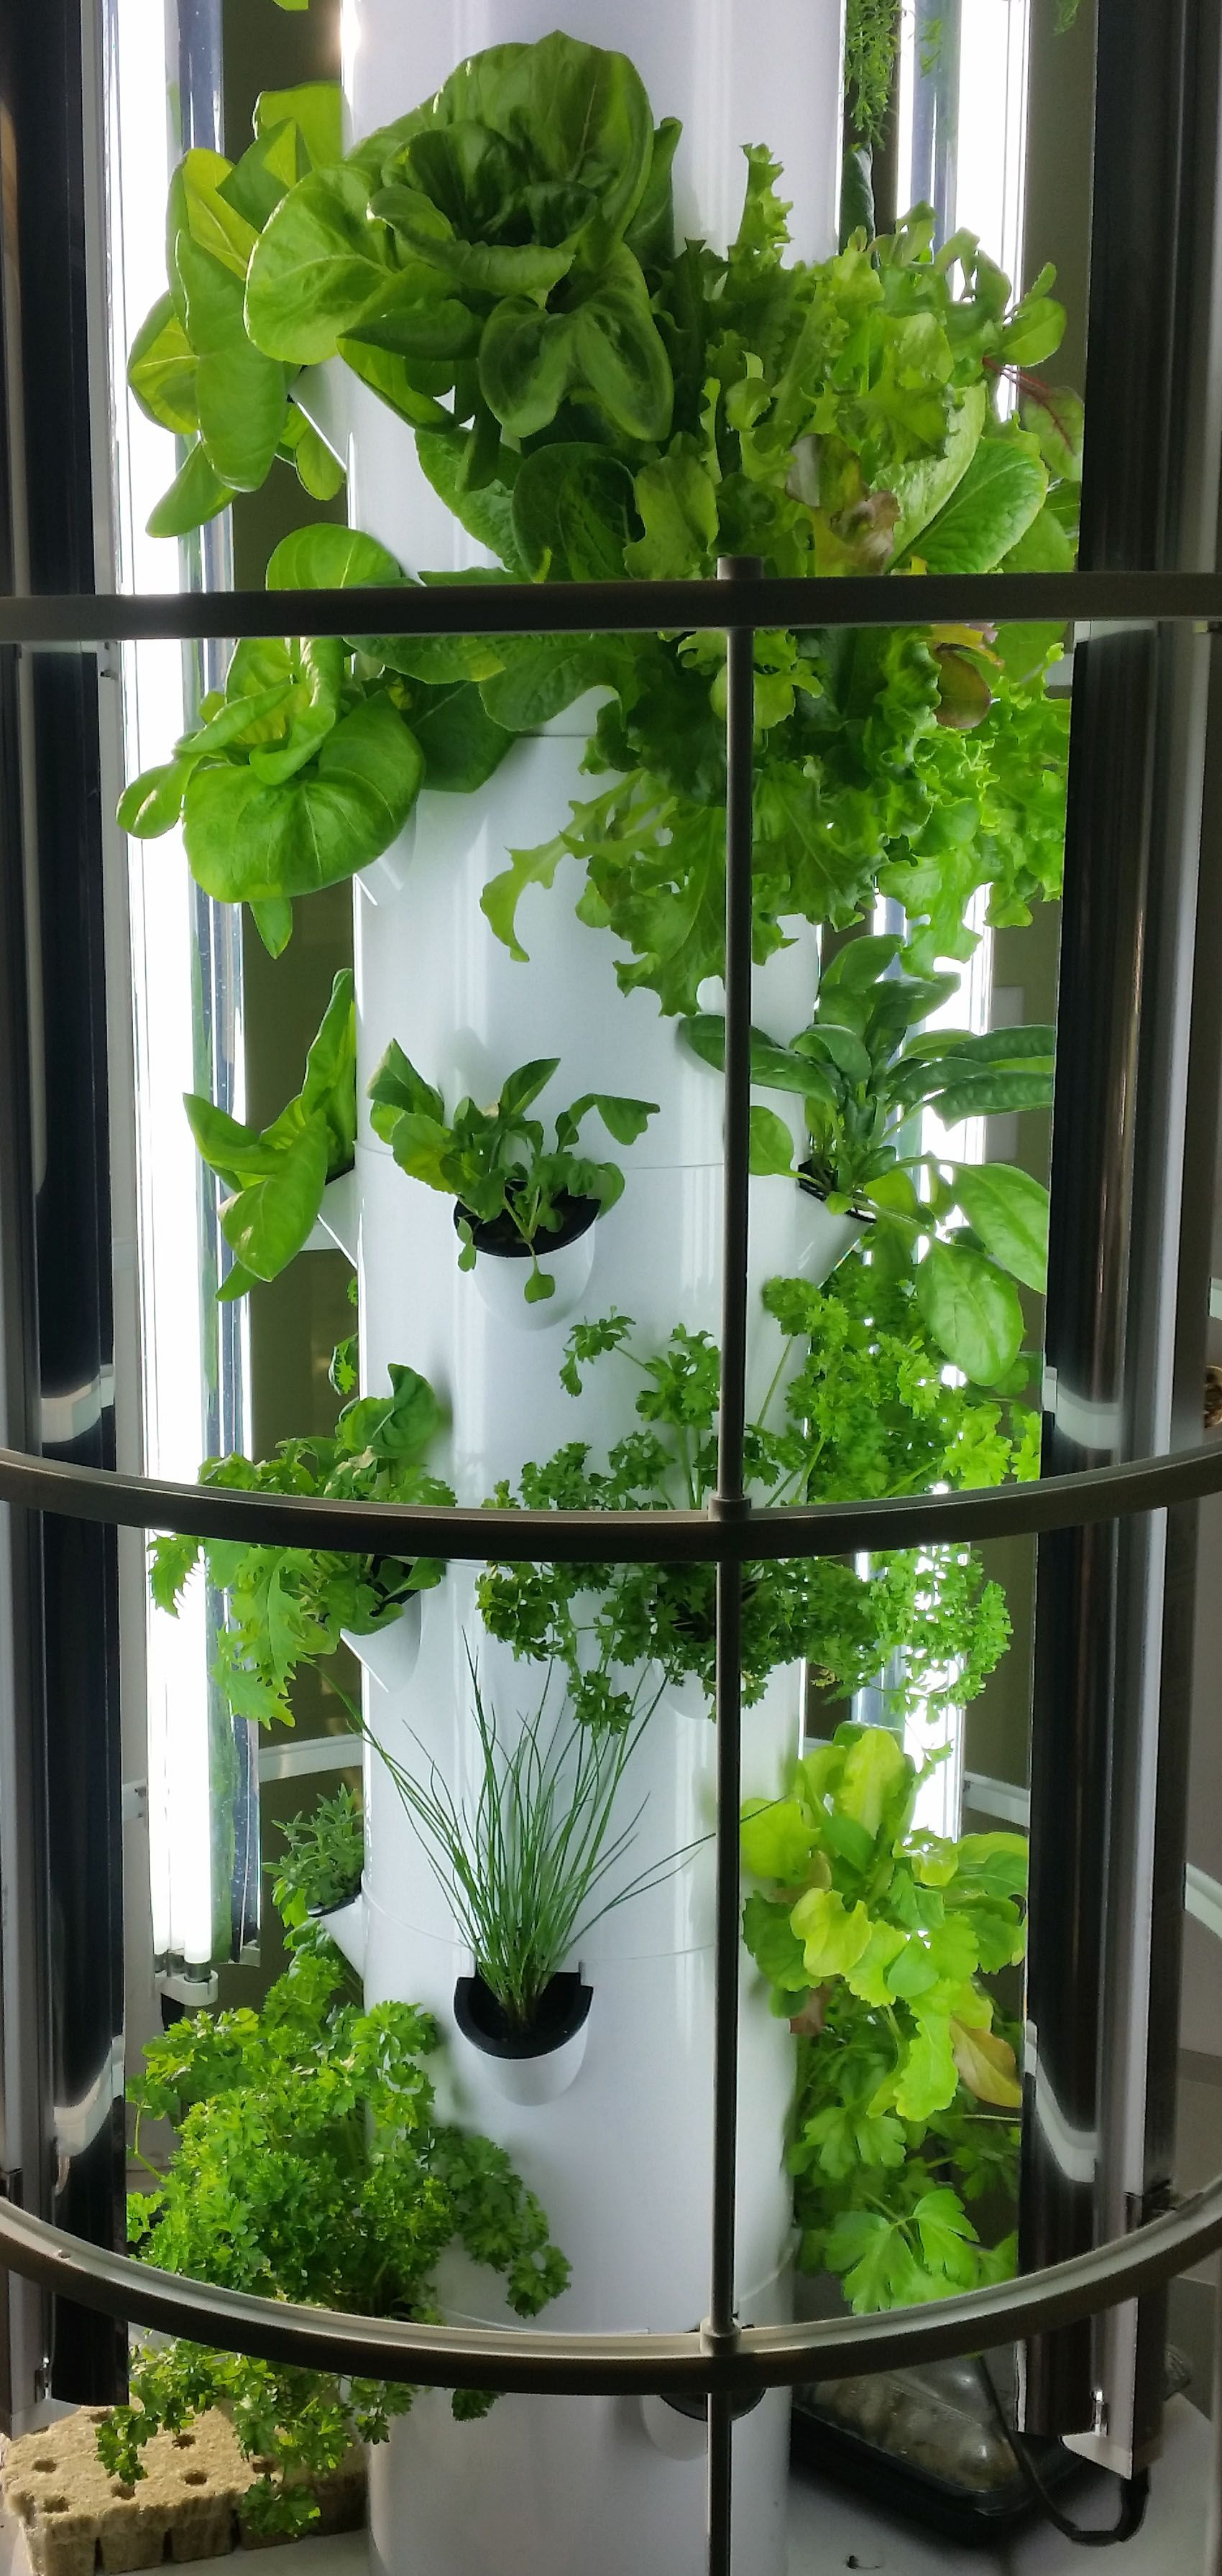 tower garden leafy greens grown indoors in the michigan winter